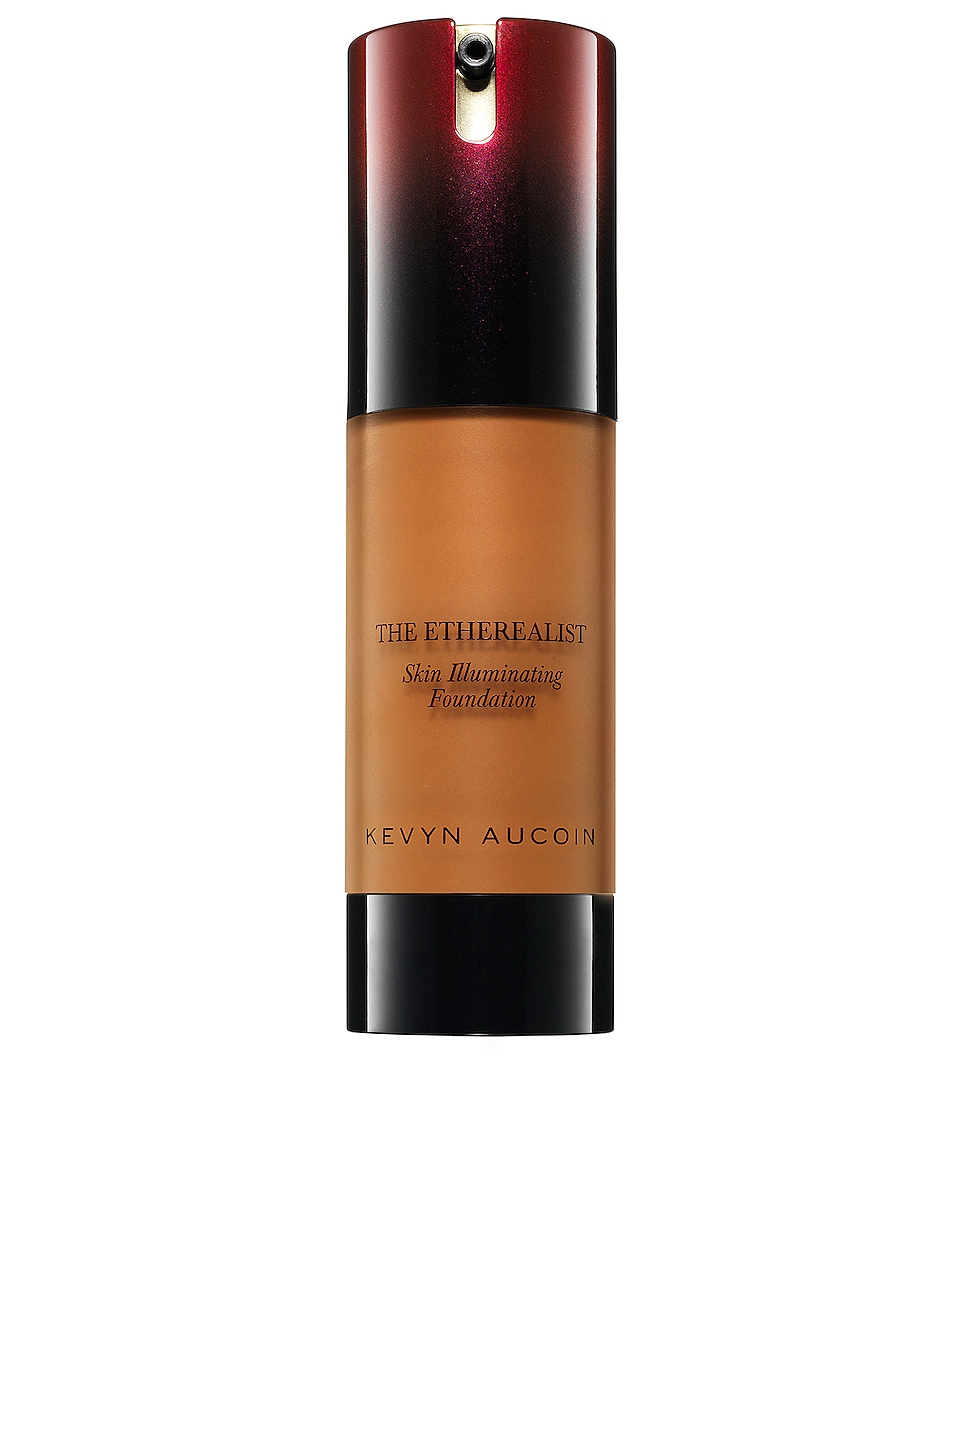 Kevyn Aucoin The Etherealist Skin Illuminating Foundation in Deep 16